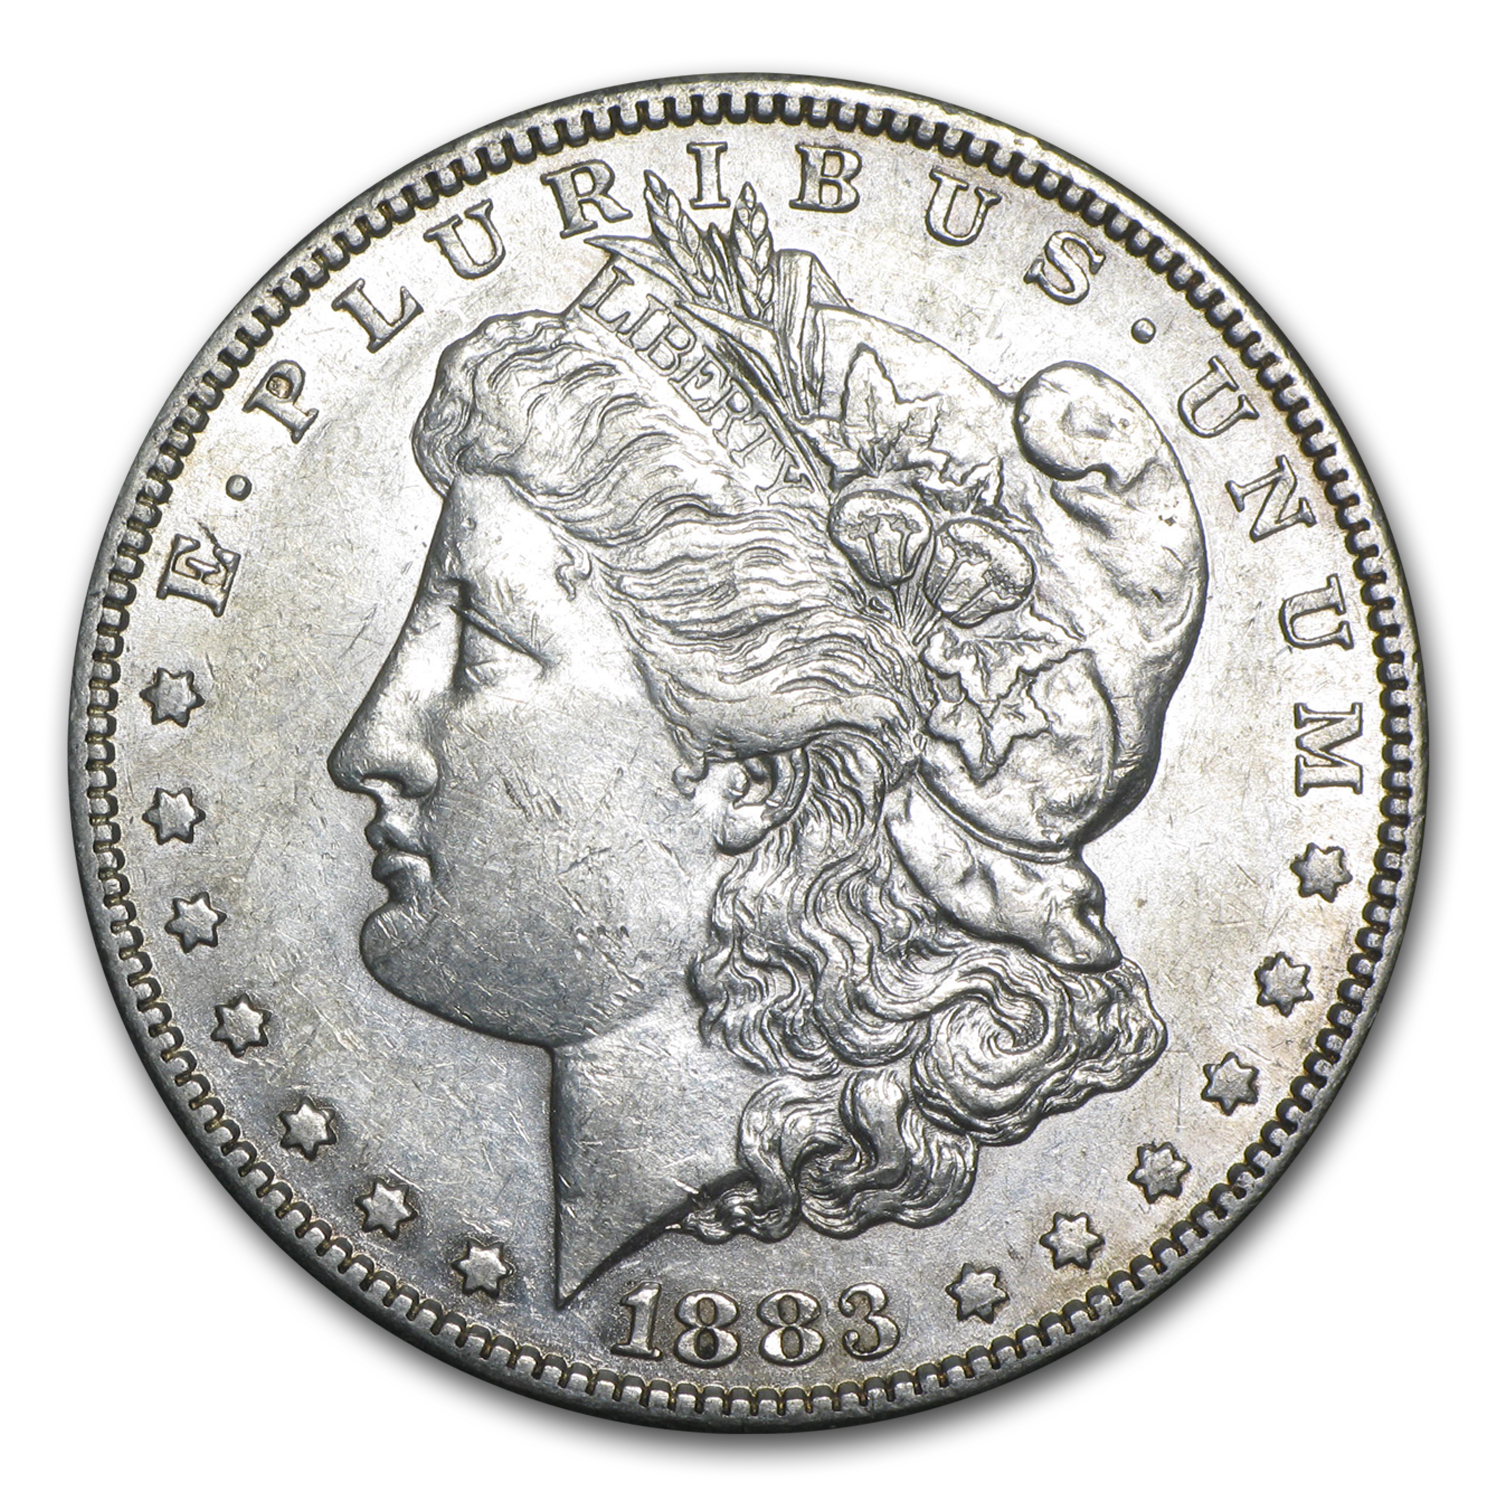 1883-S Morgan Dollar - Almost Uncirculated-50